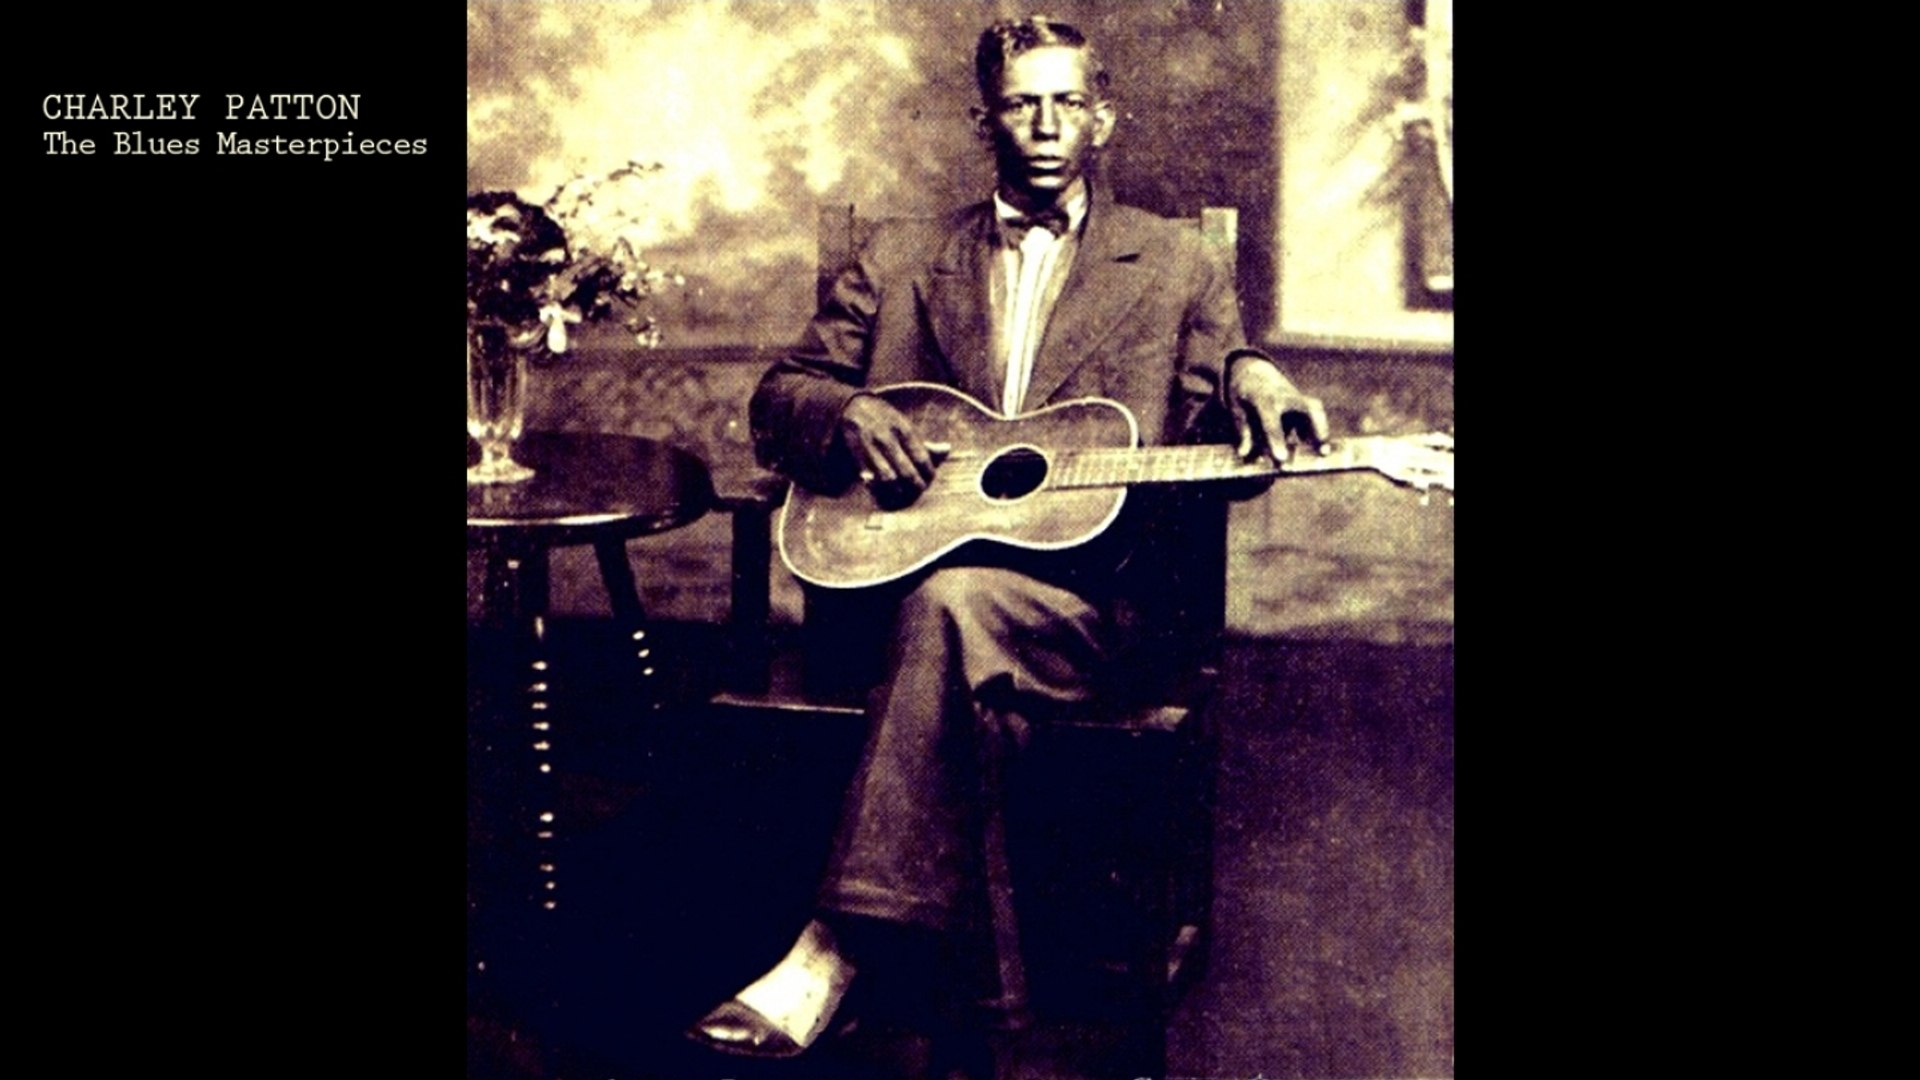 Charley Patton - The Blues Masterpieces (Classic Country Blues Music)